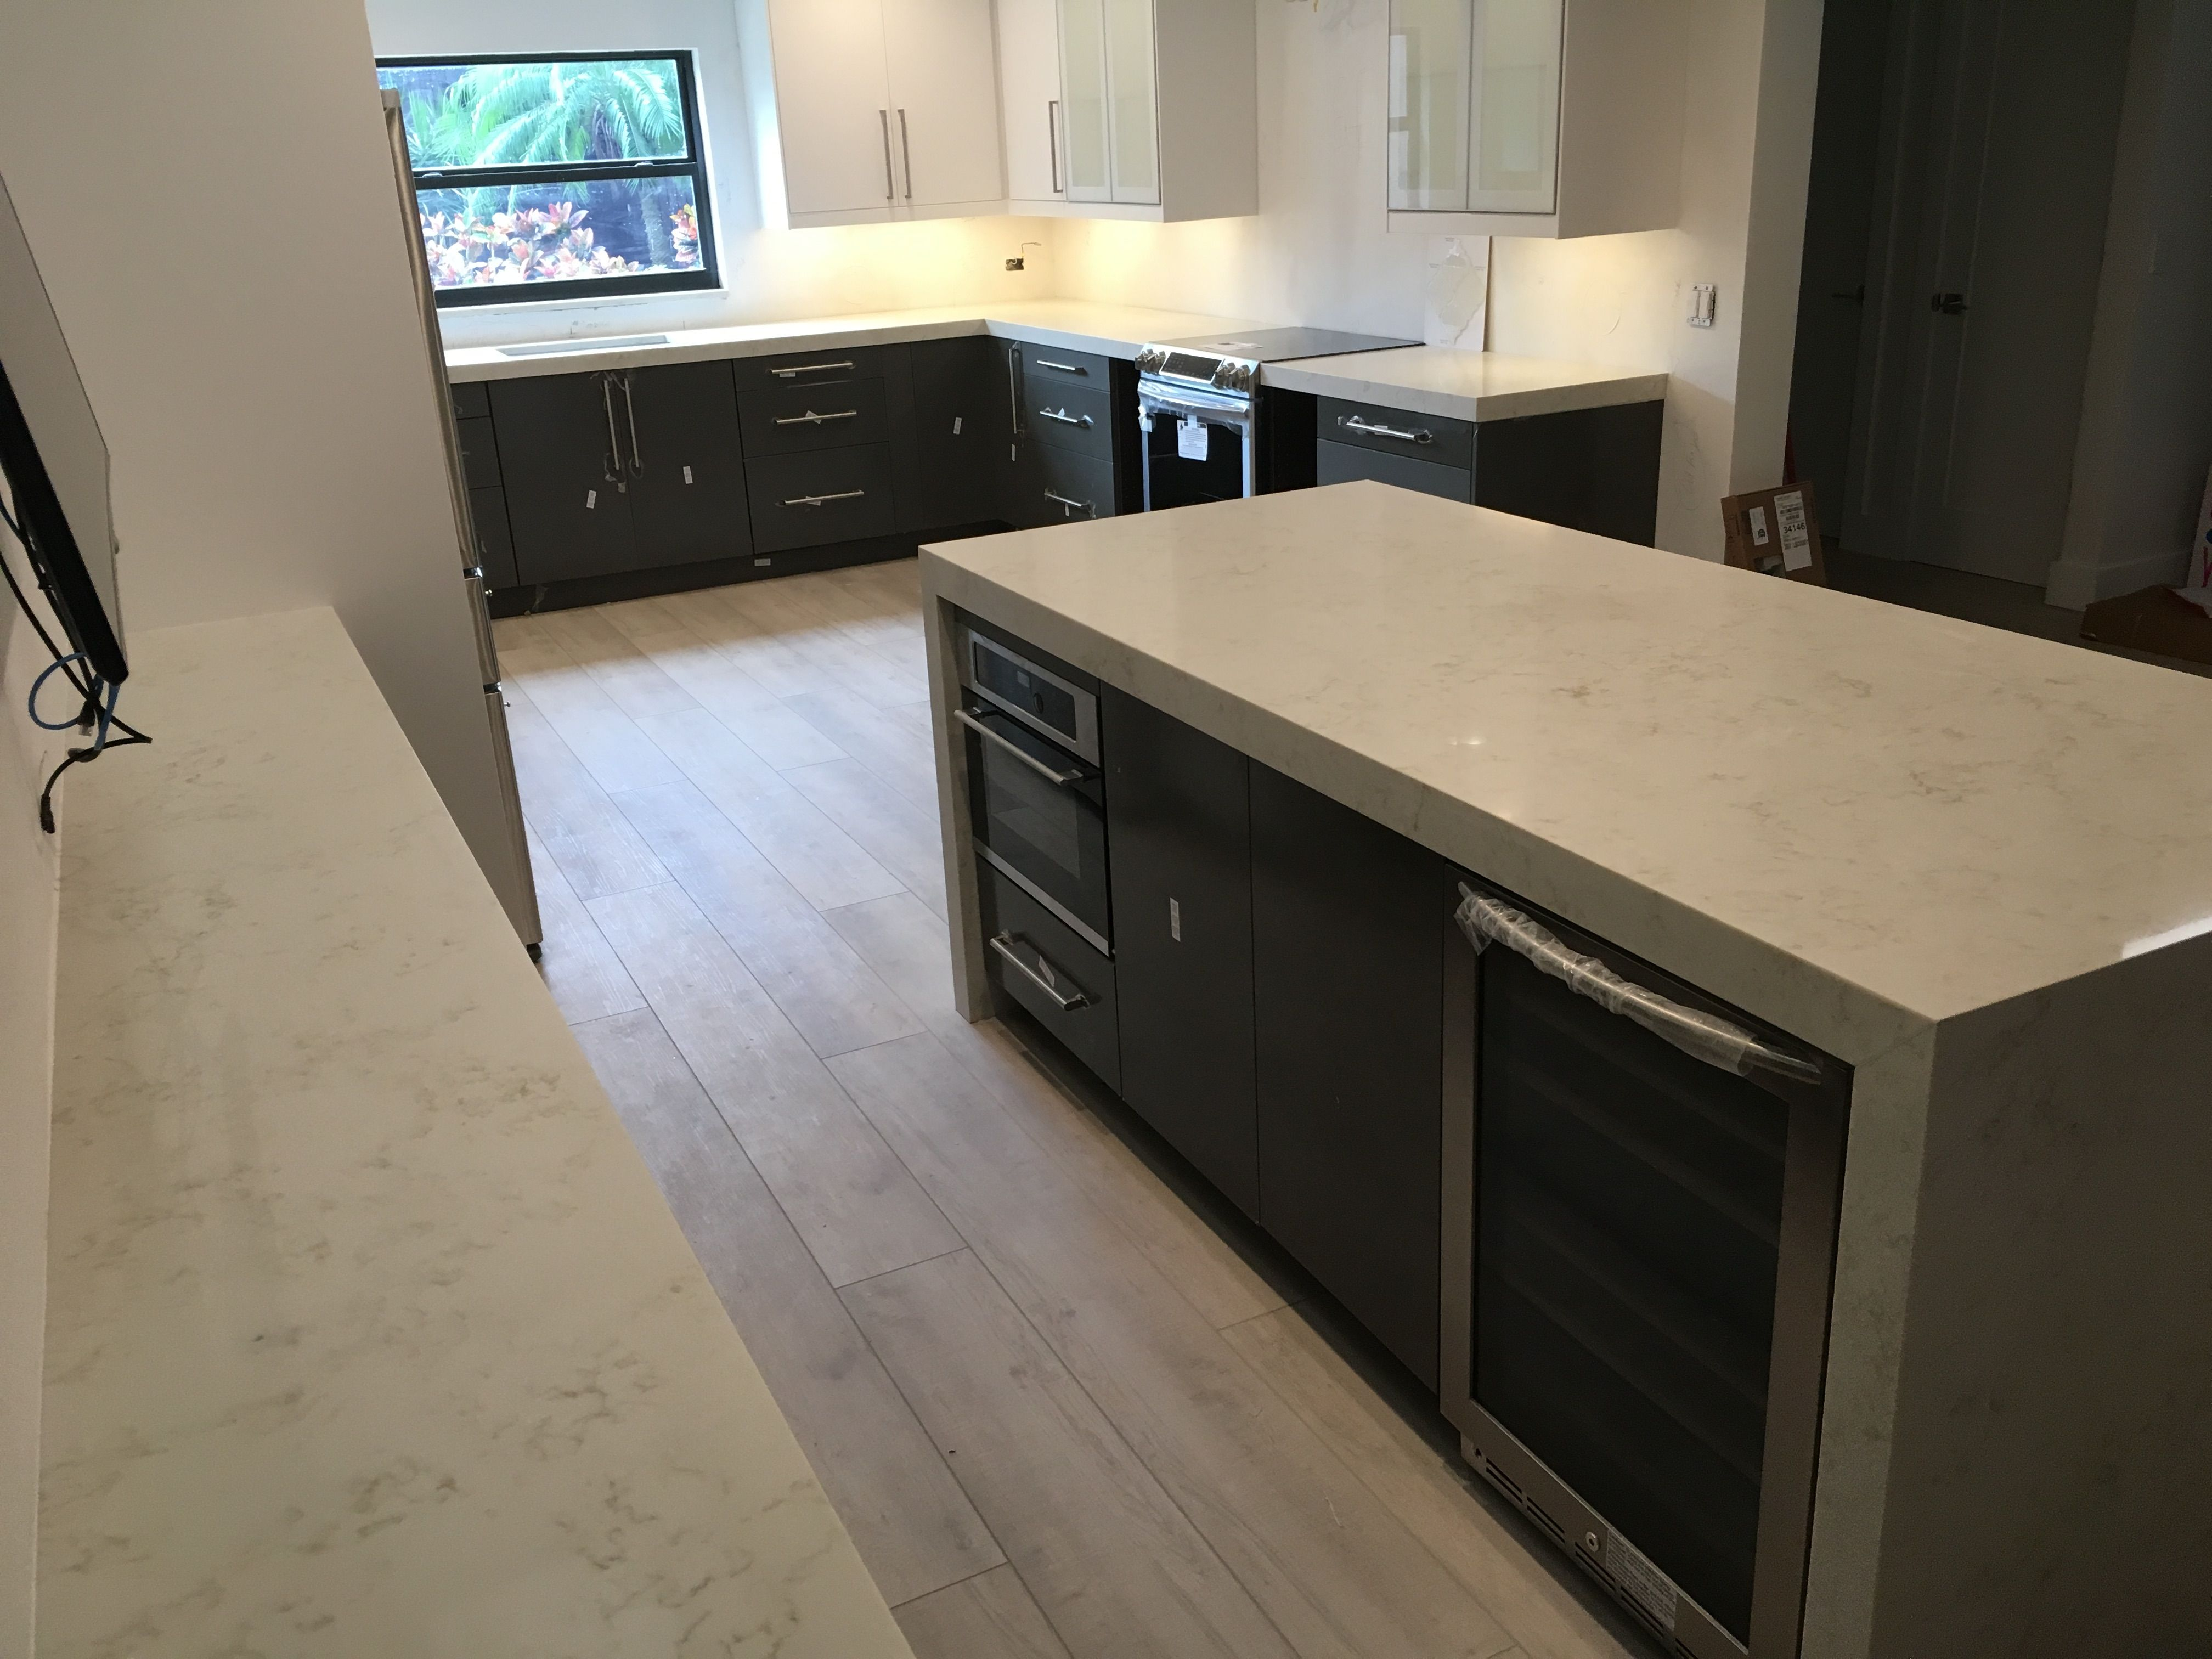 Quartz Kitchen Countertops Boca Raton Florida We Fabricated And